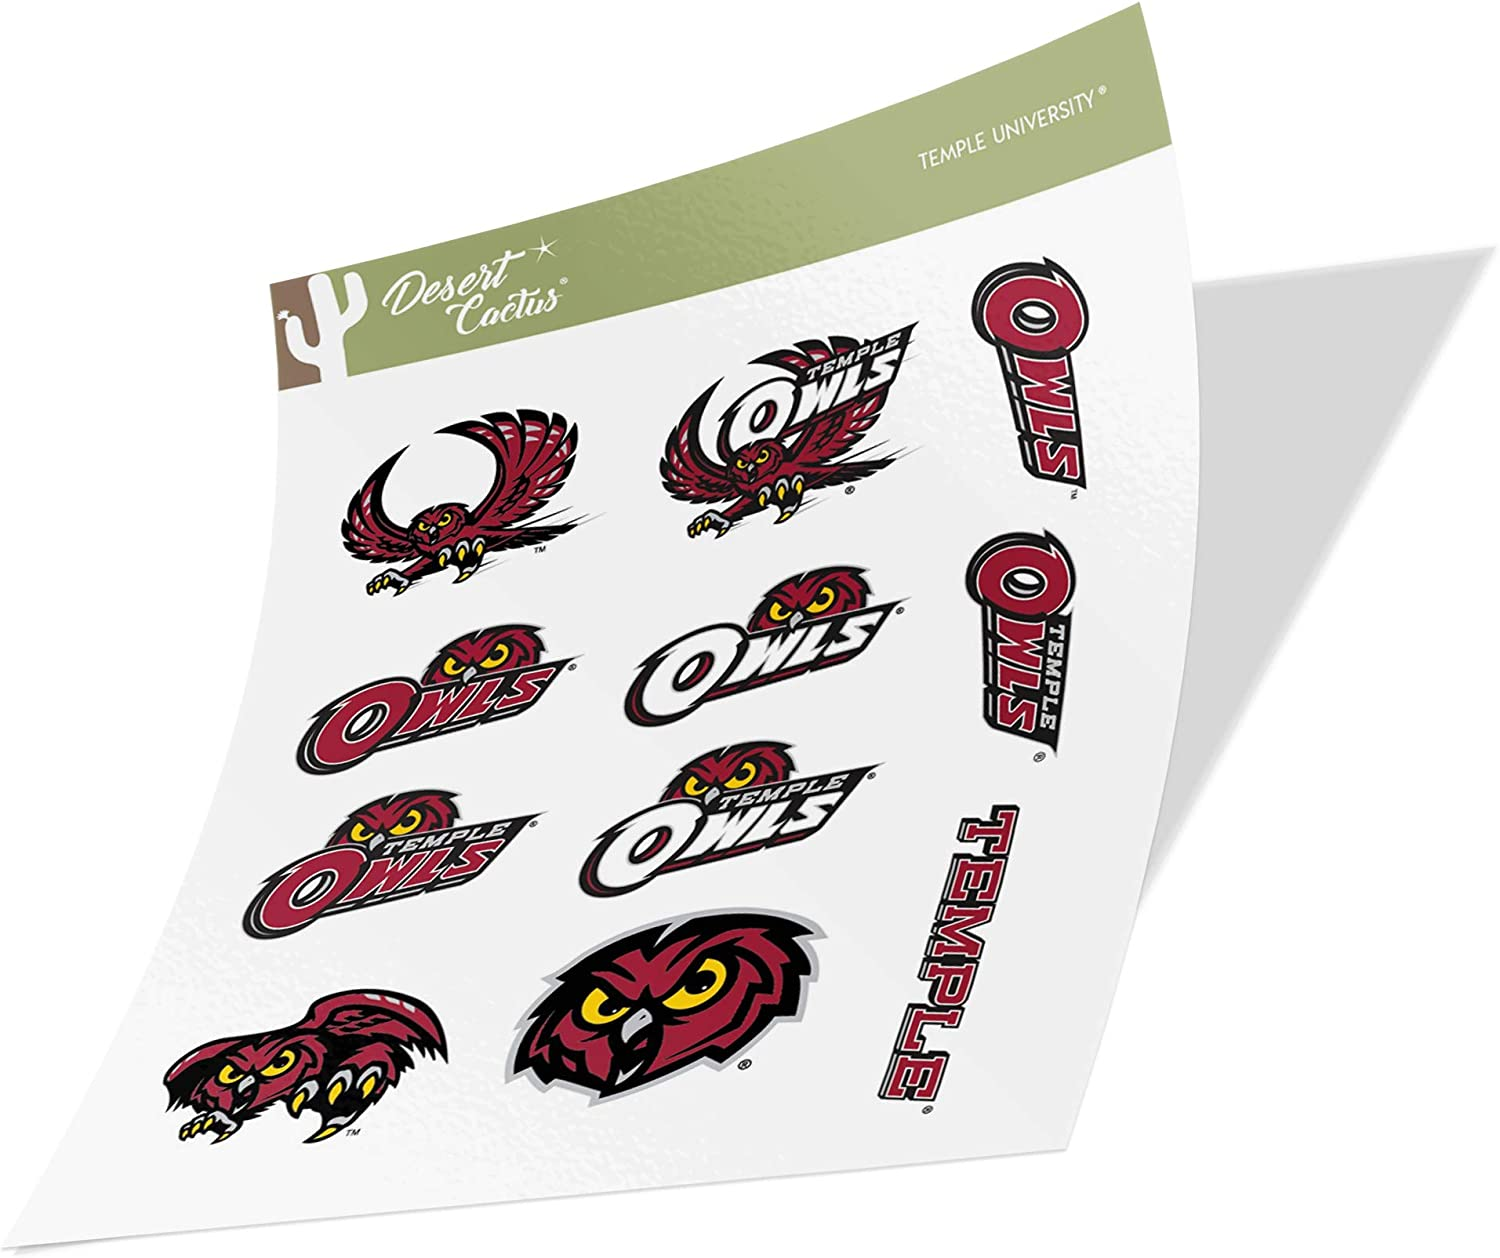 Temple University Owls NCAA Sticker Vinyl Decal Laptop Water Bottle Car Scrapbook (Type 2 Sheet)